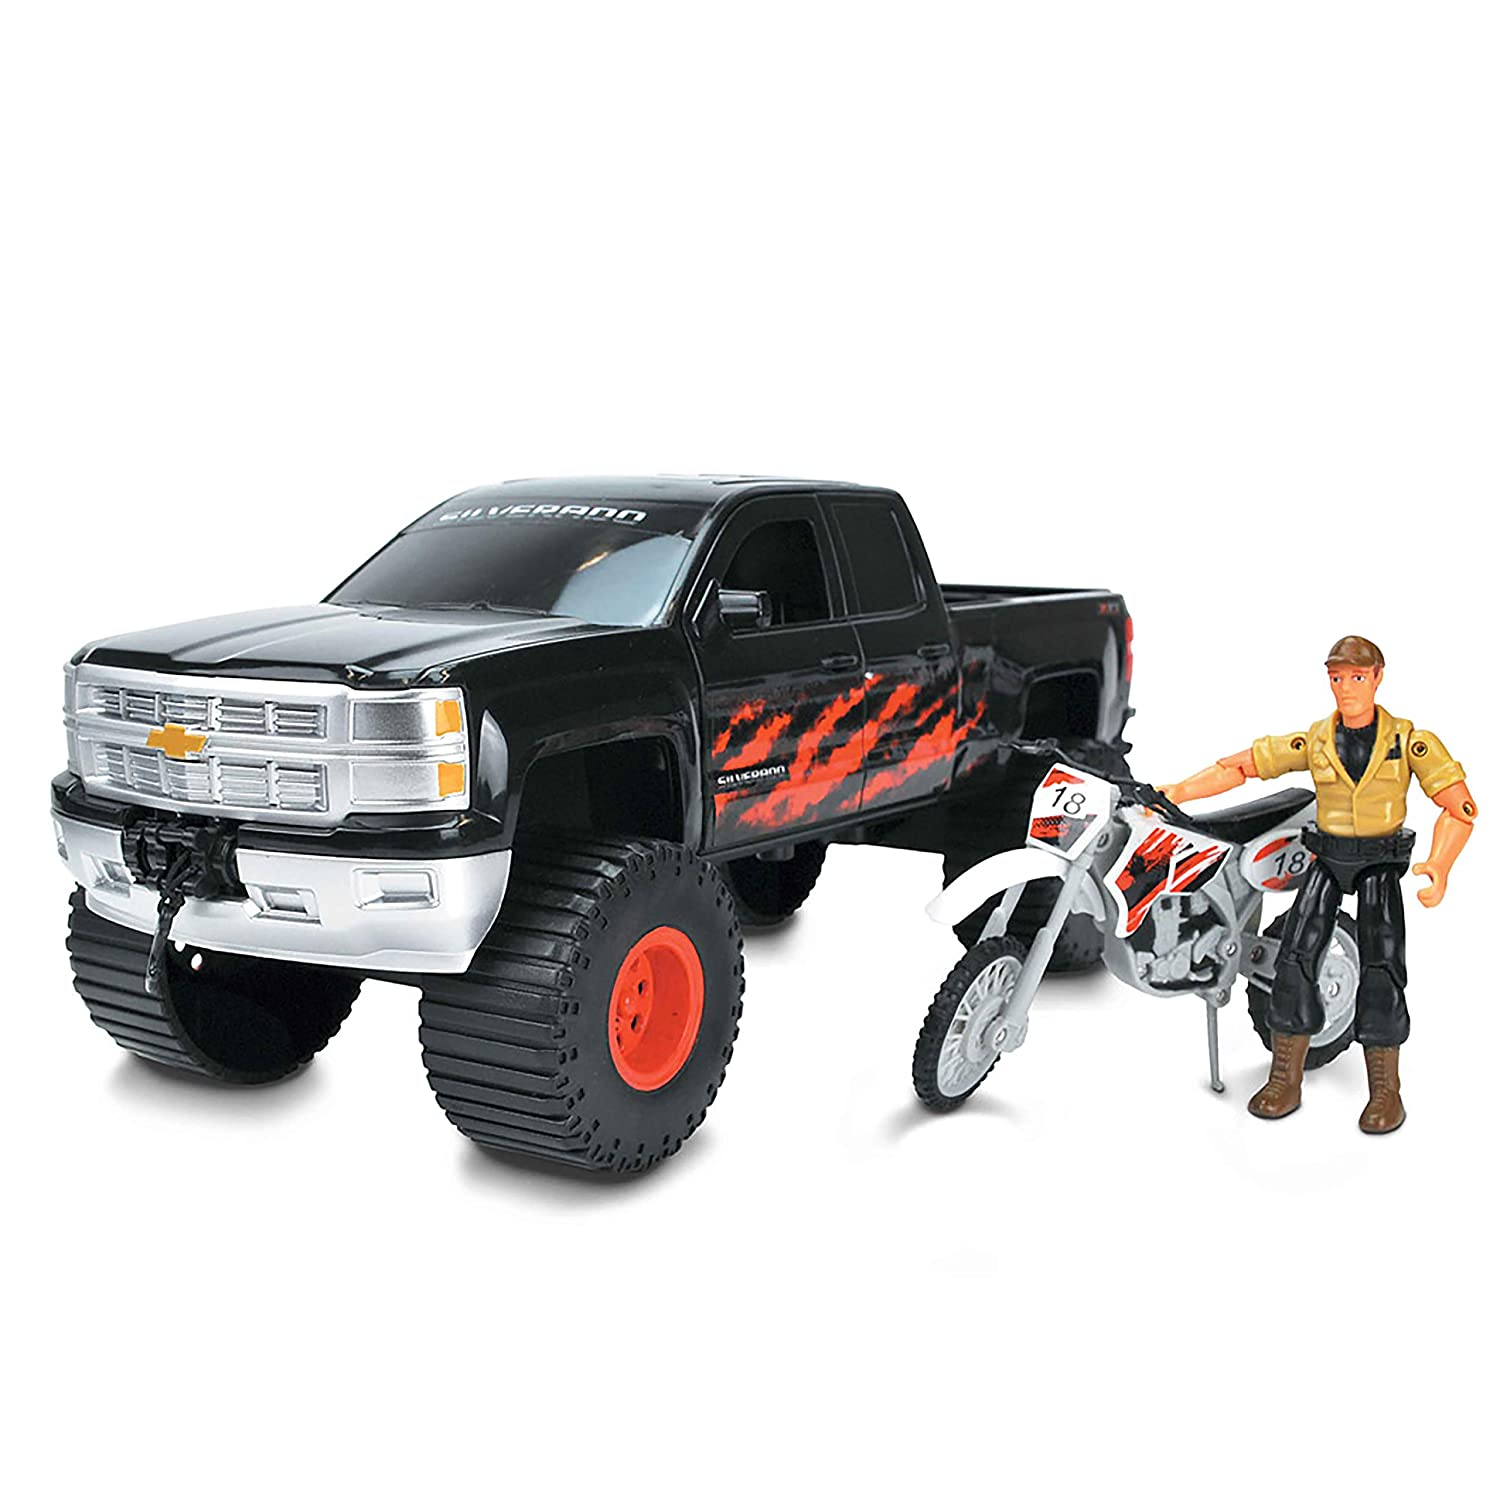 14.75 x 7 Black and Red Tree House Kids Chevy with Bike Play Set Truck Bike Figure